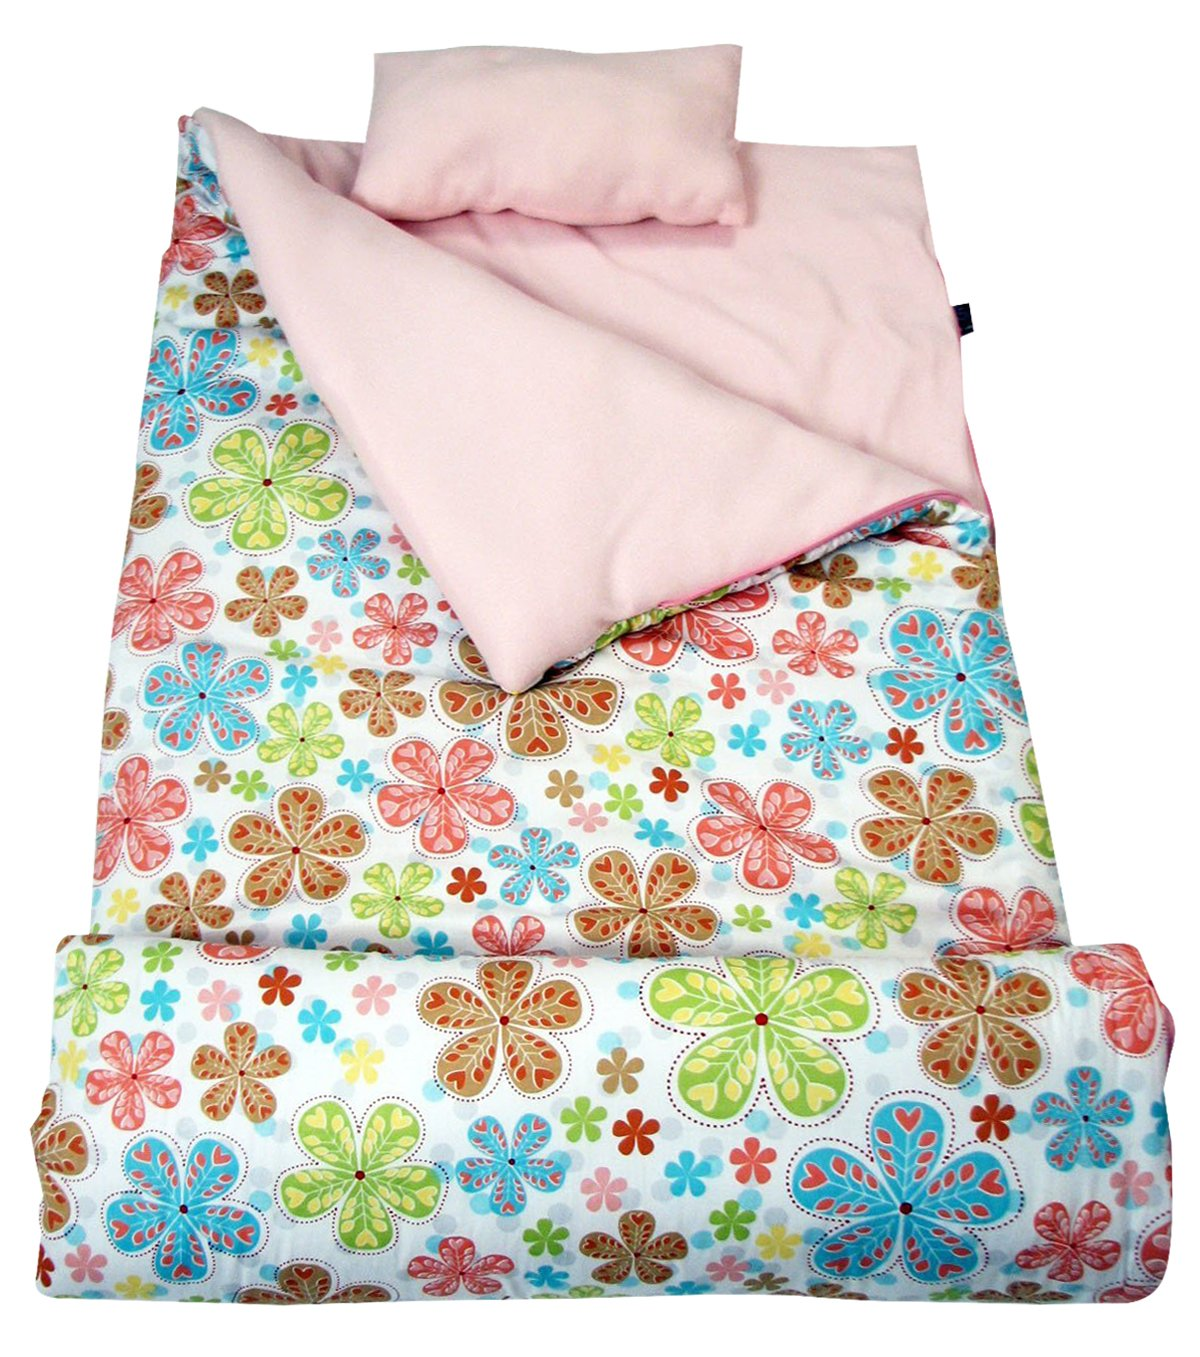 SoHo Kids Autumn's Graden Children Sleeping Slumber Bag with Pillow and Carrying case Lightweight Foldable for Sleep Over